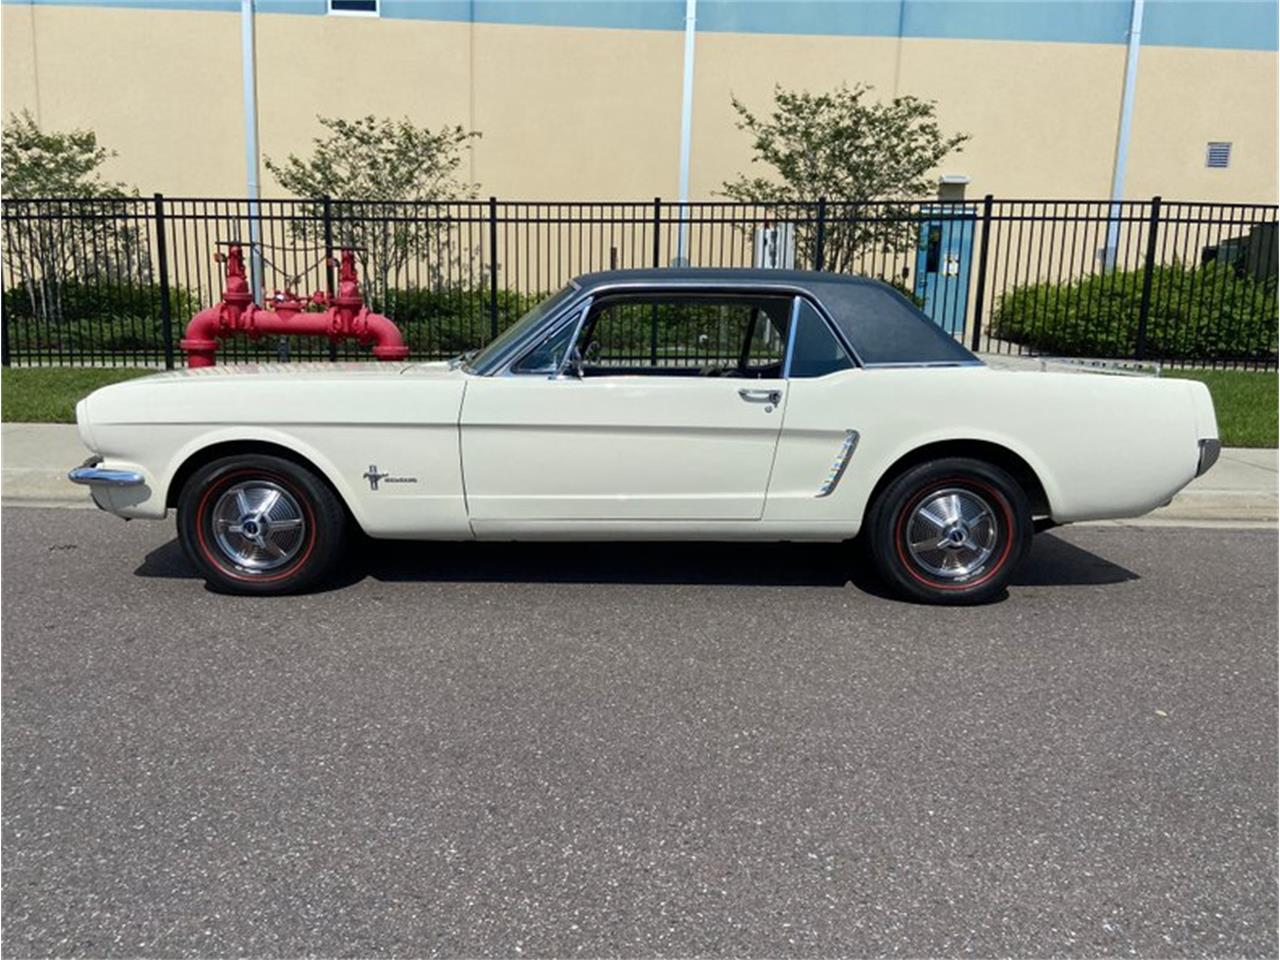 Ford Mustang 1965 prix tout compris 1965